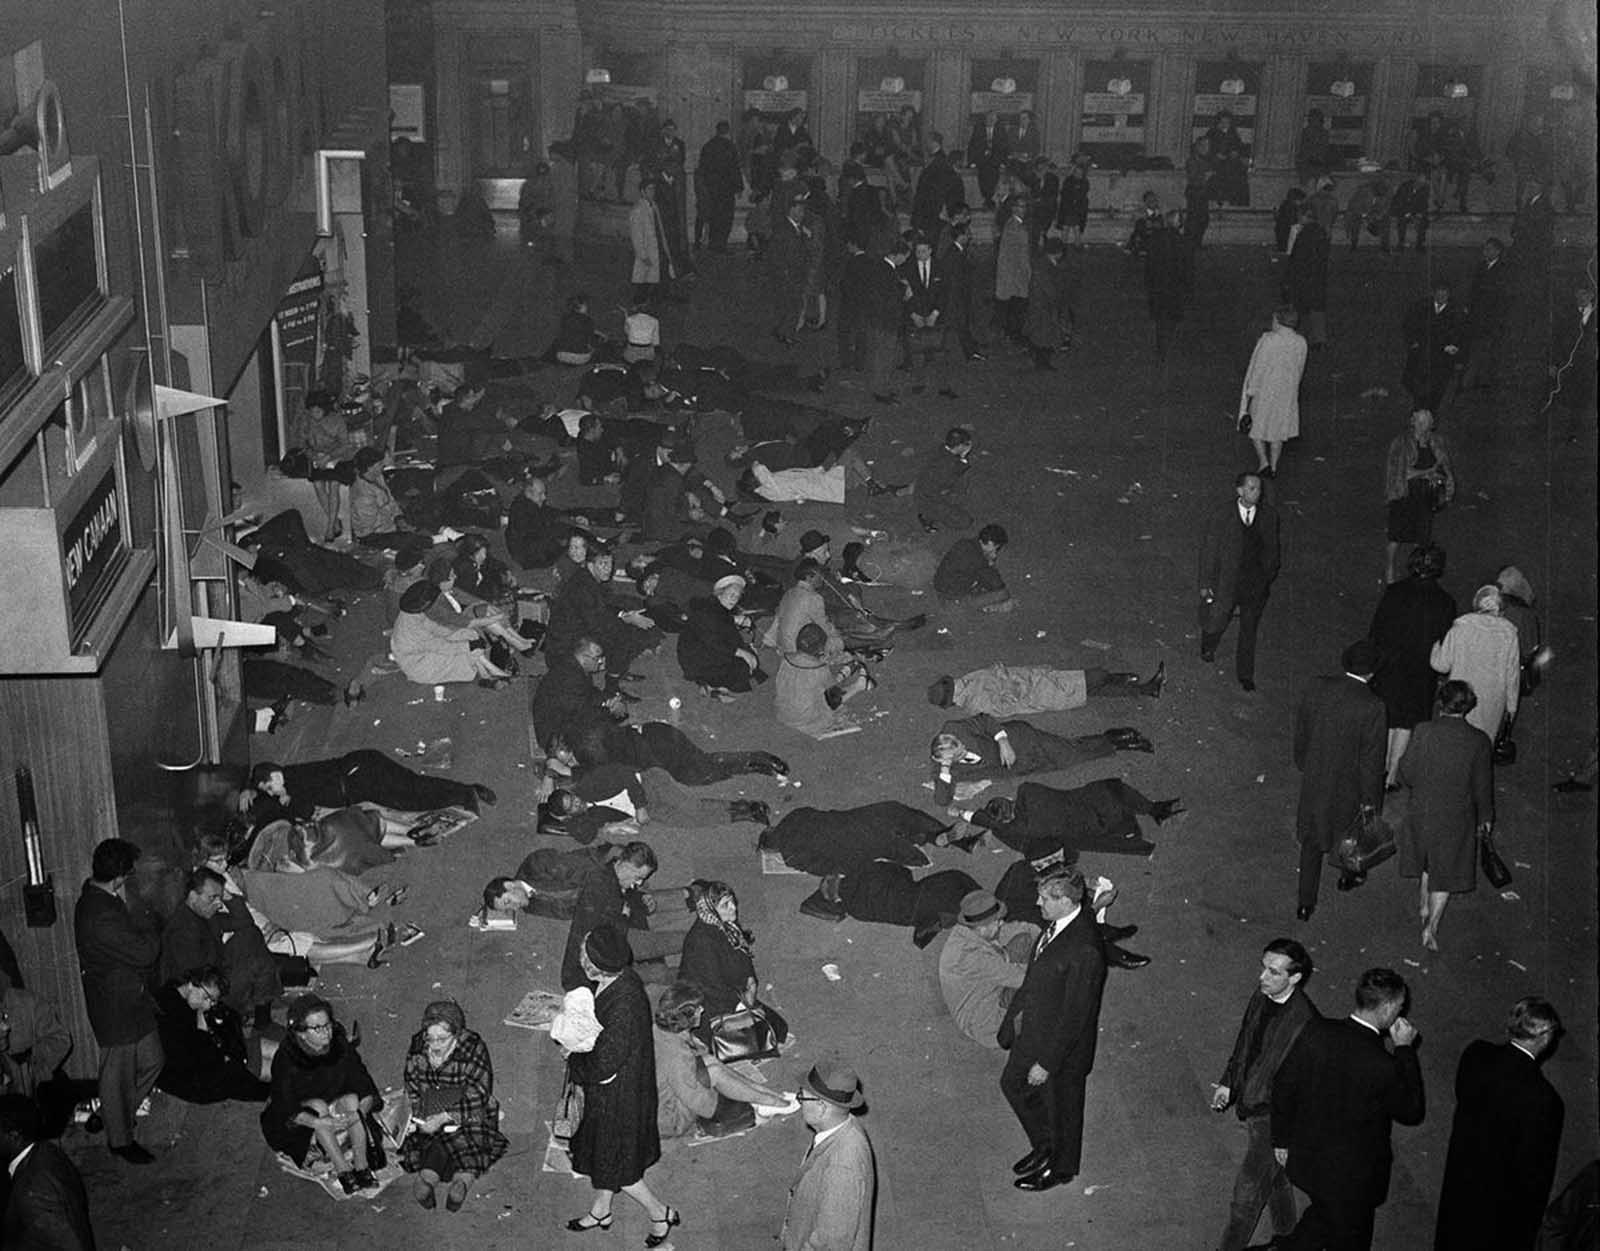 People sleep sitting and lying down at Grand Central Terminal's main waiting room in New York, during a massive power failure, on November 9, 1965. The area is lit with emergency lighting. The blackout affected New York State, most of New England, parts of New Jersey, Pennsylvania, and Ontario, Canada.